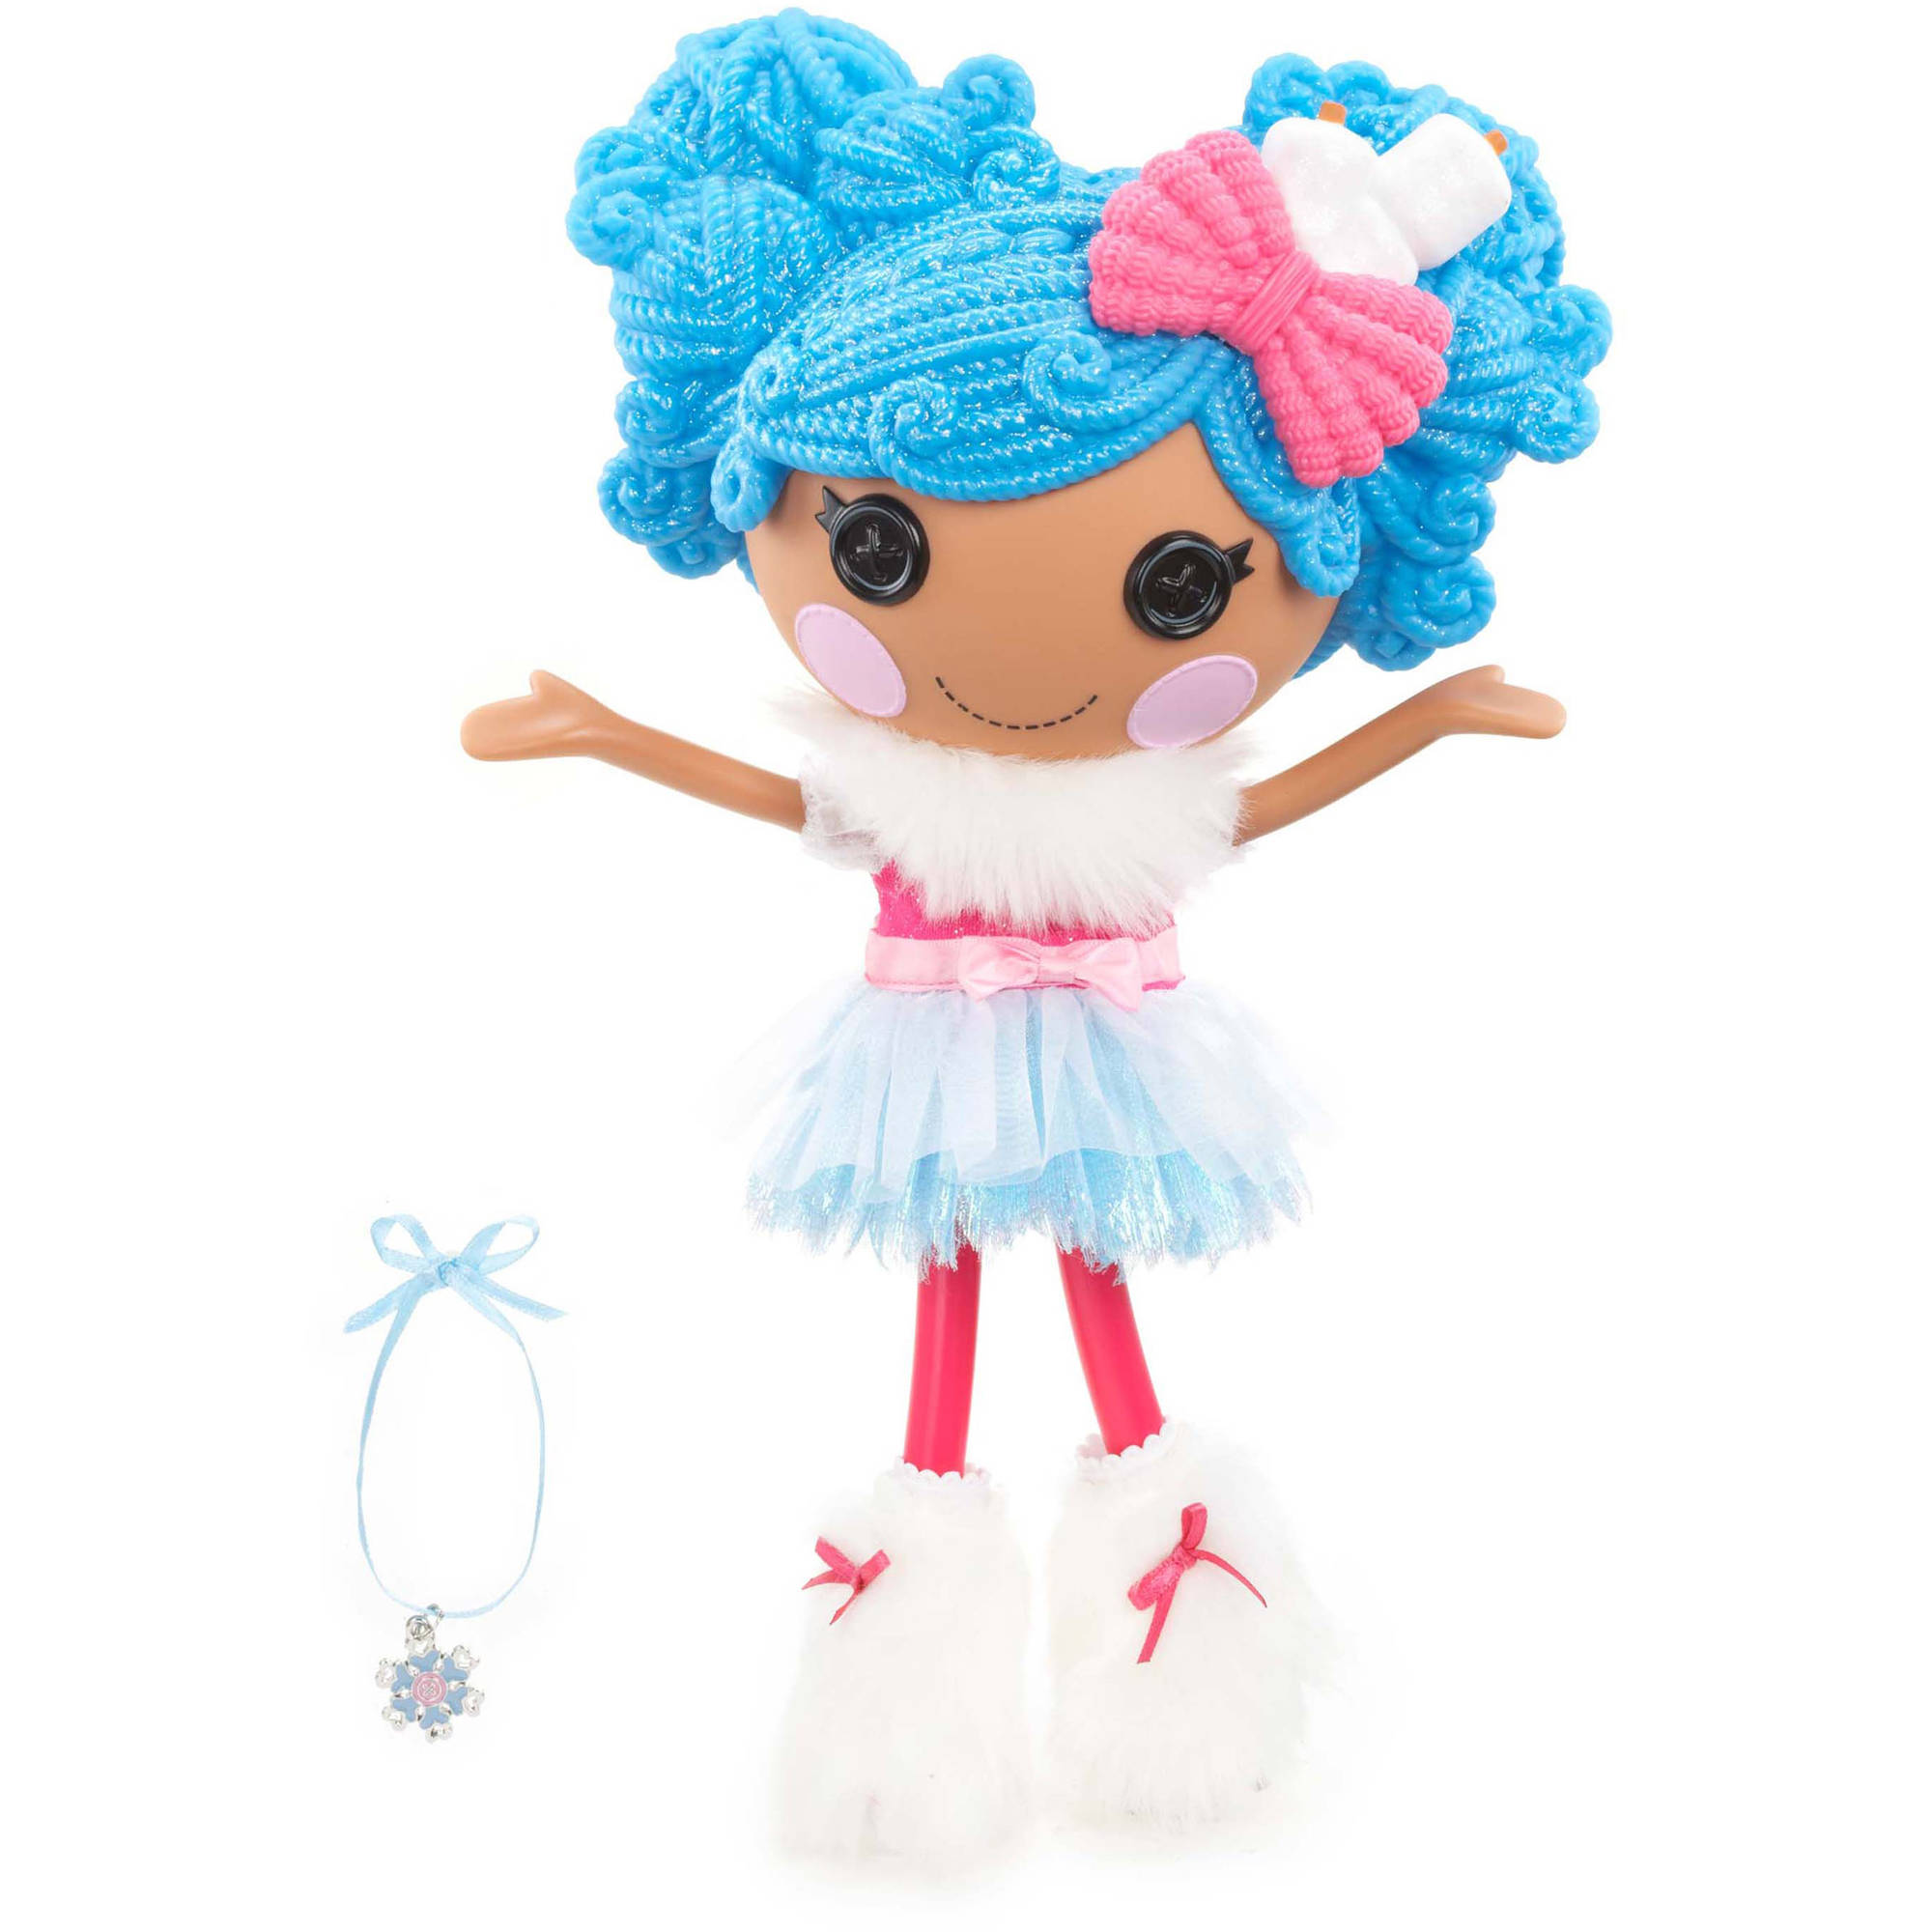 Lalaloopsy Super Silly Party Doll, Mittens Fluff 'n' Stuff